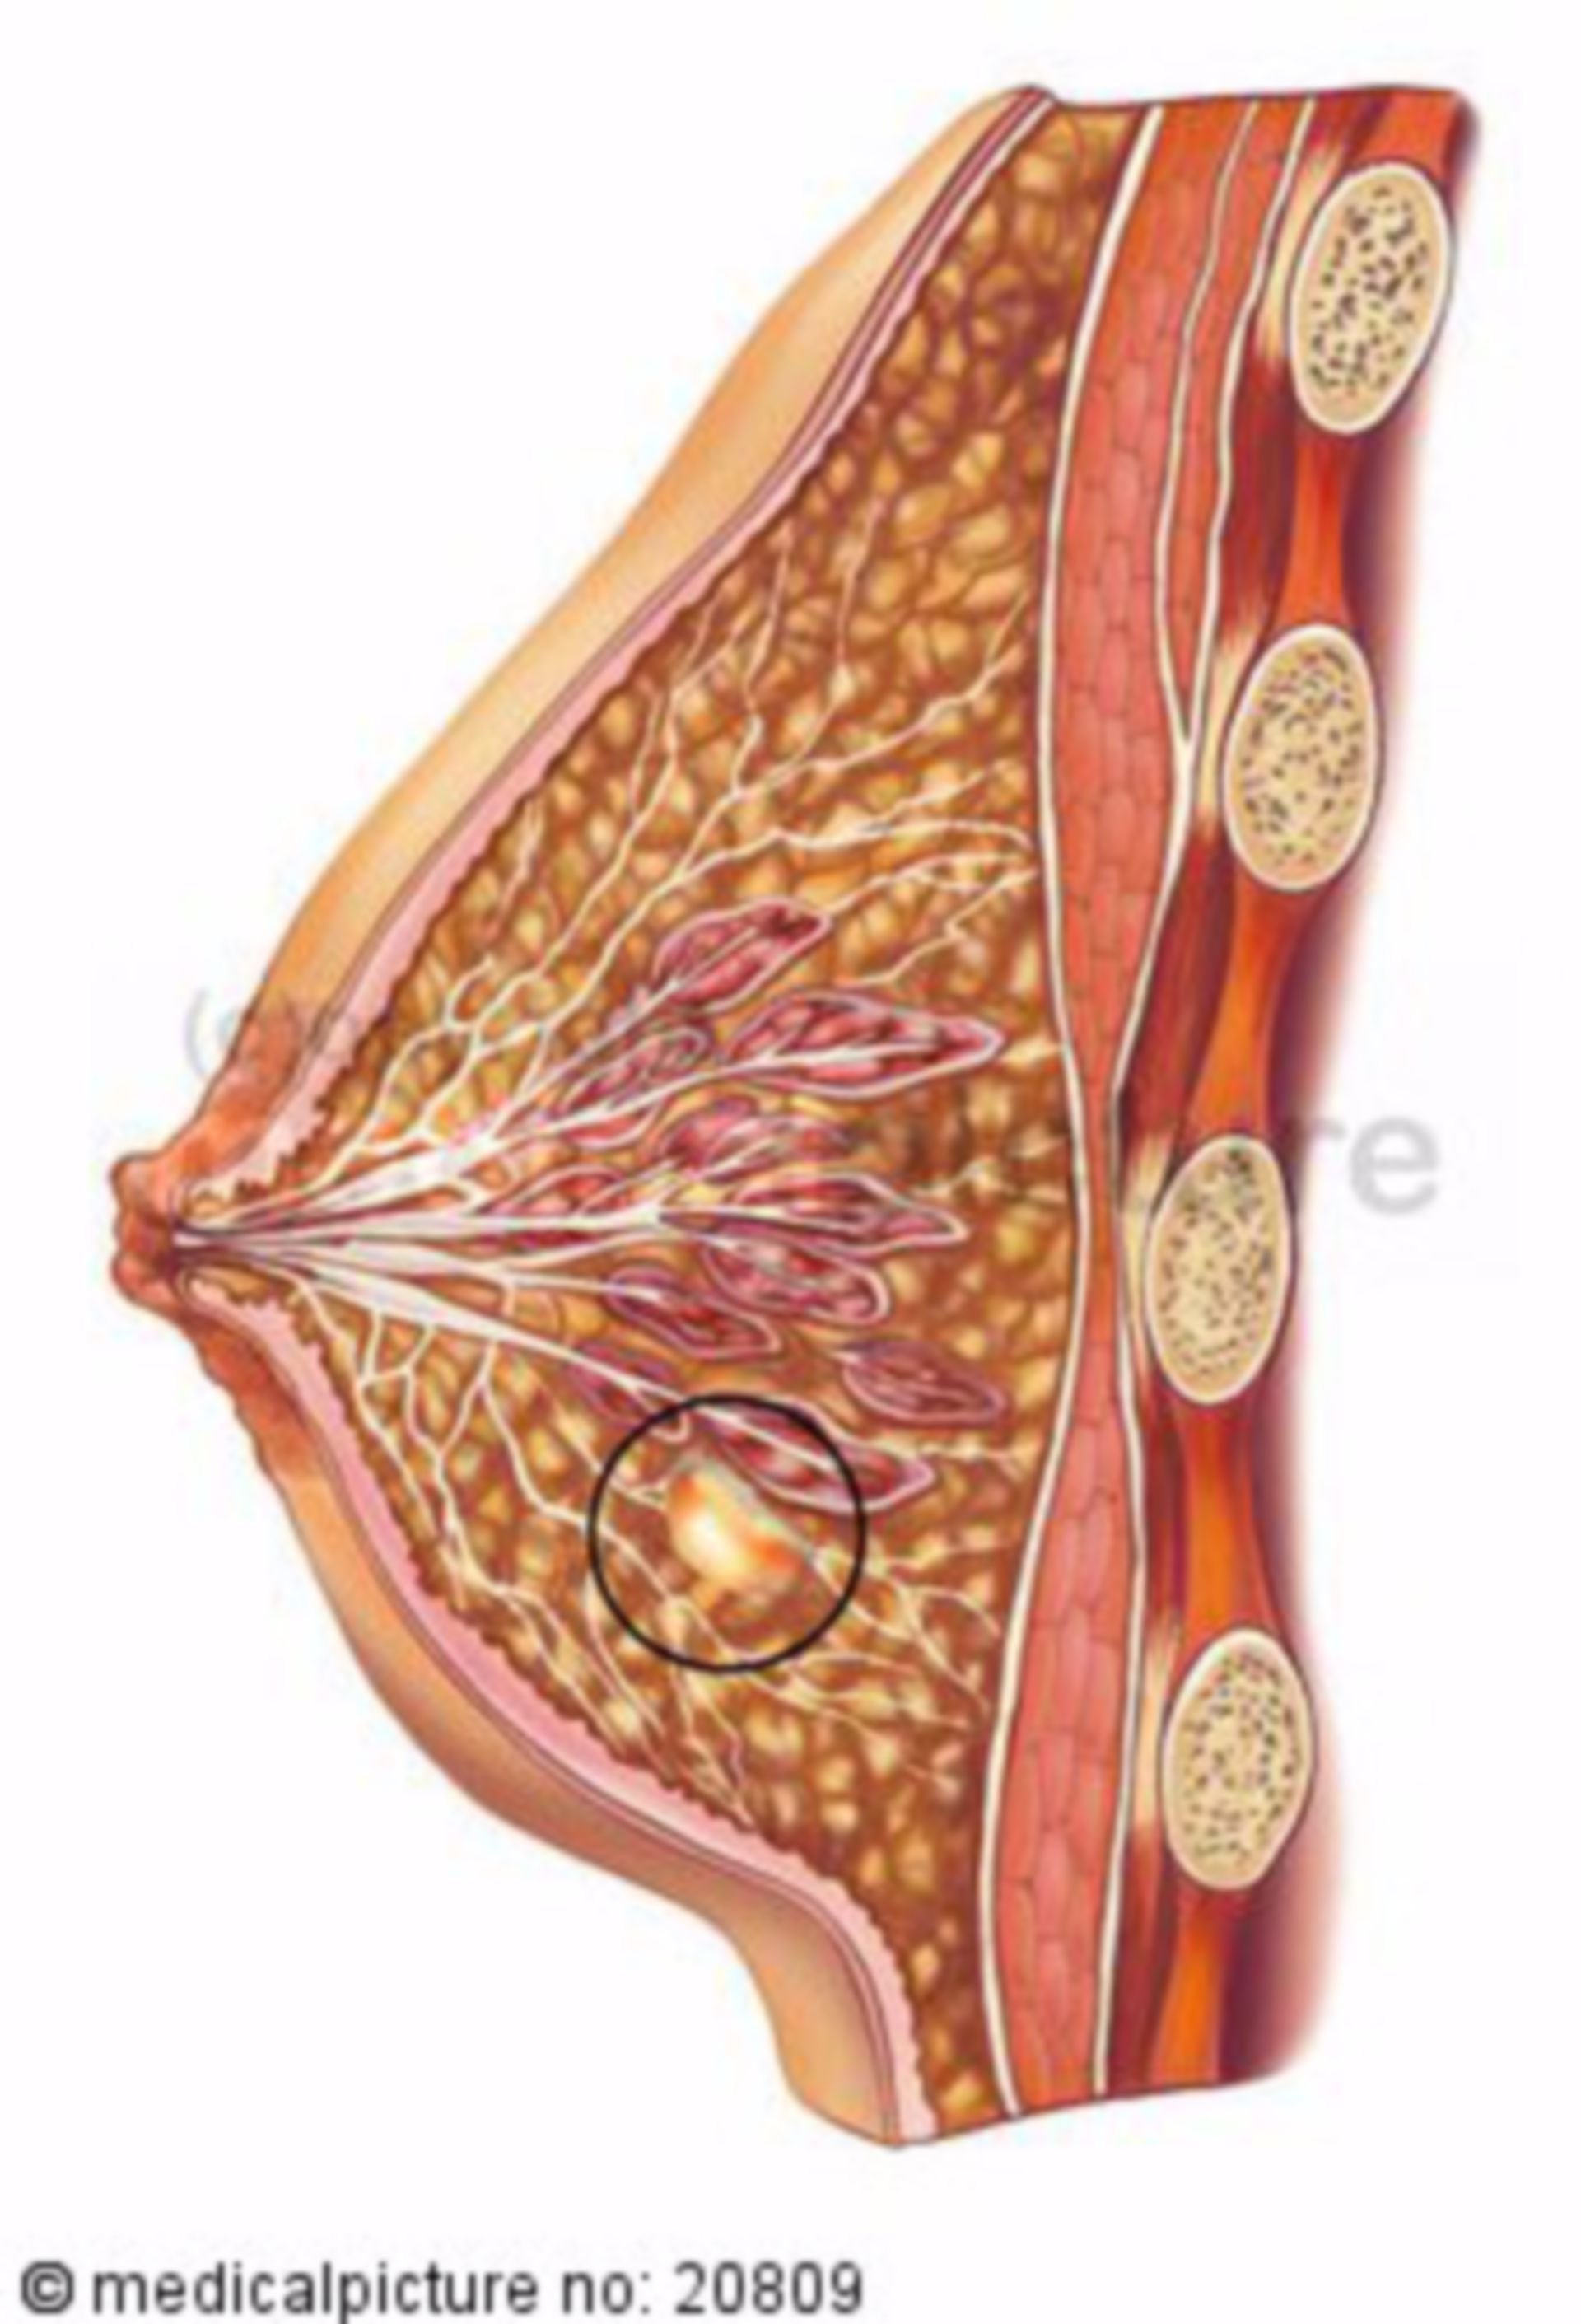 Cyst of the female breast